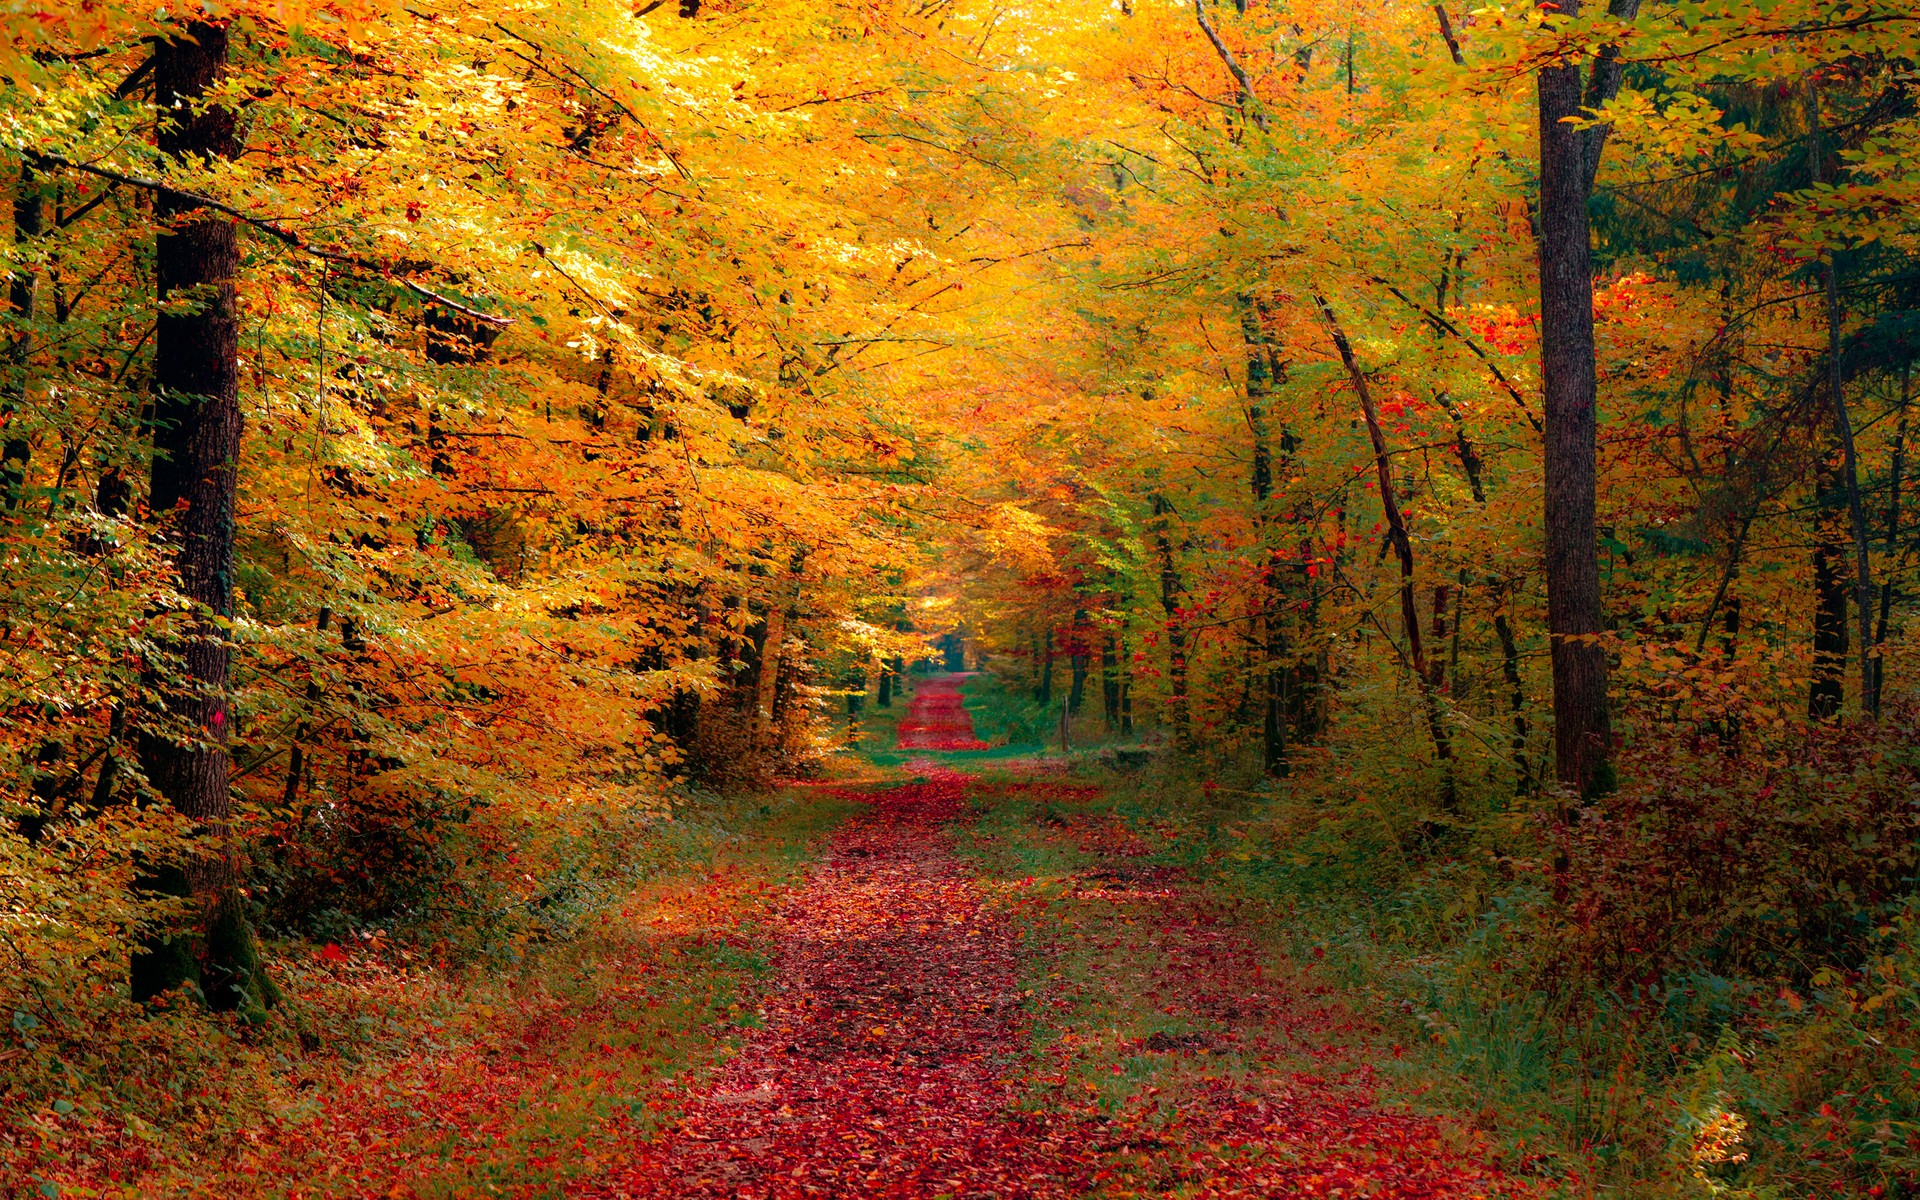 autumn forest wallpaper 690808